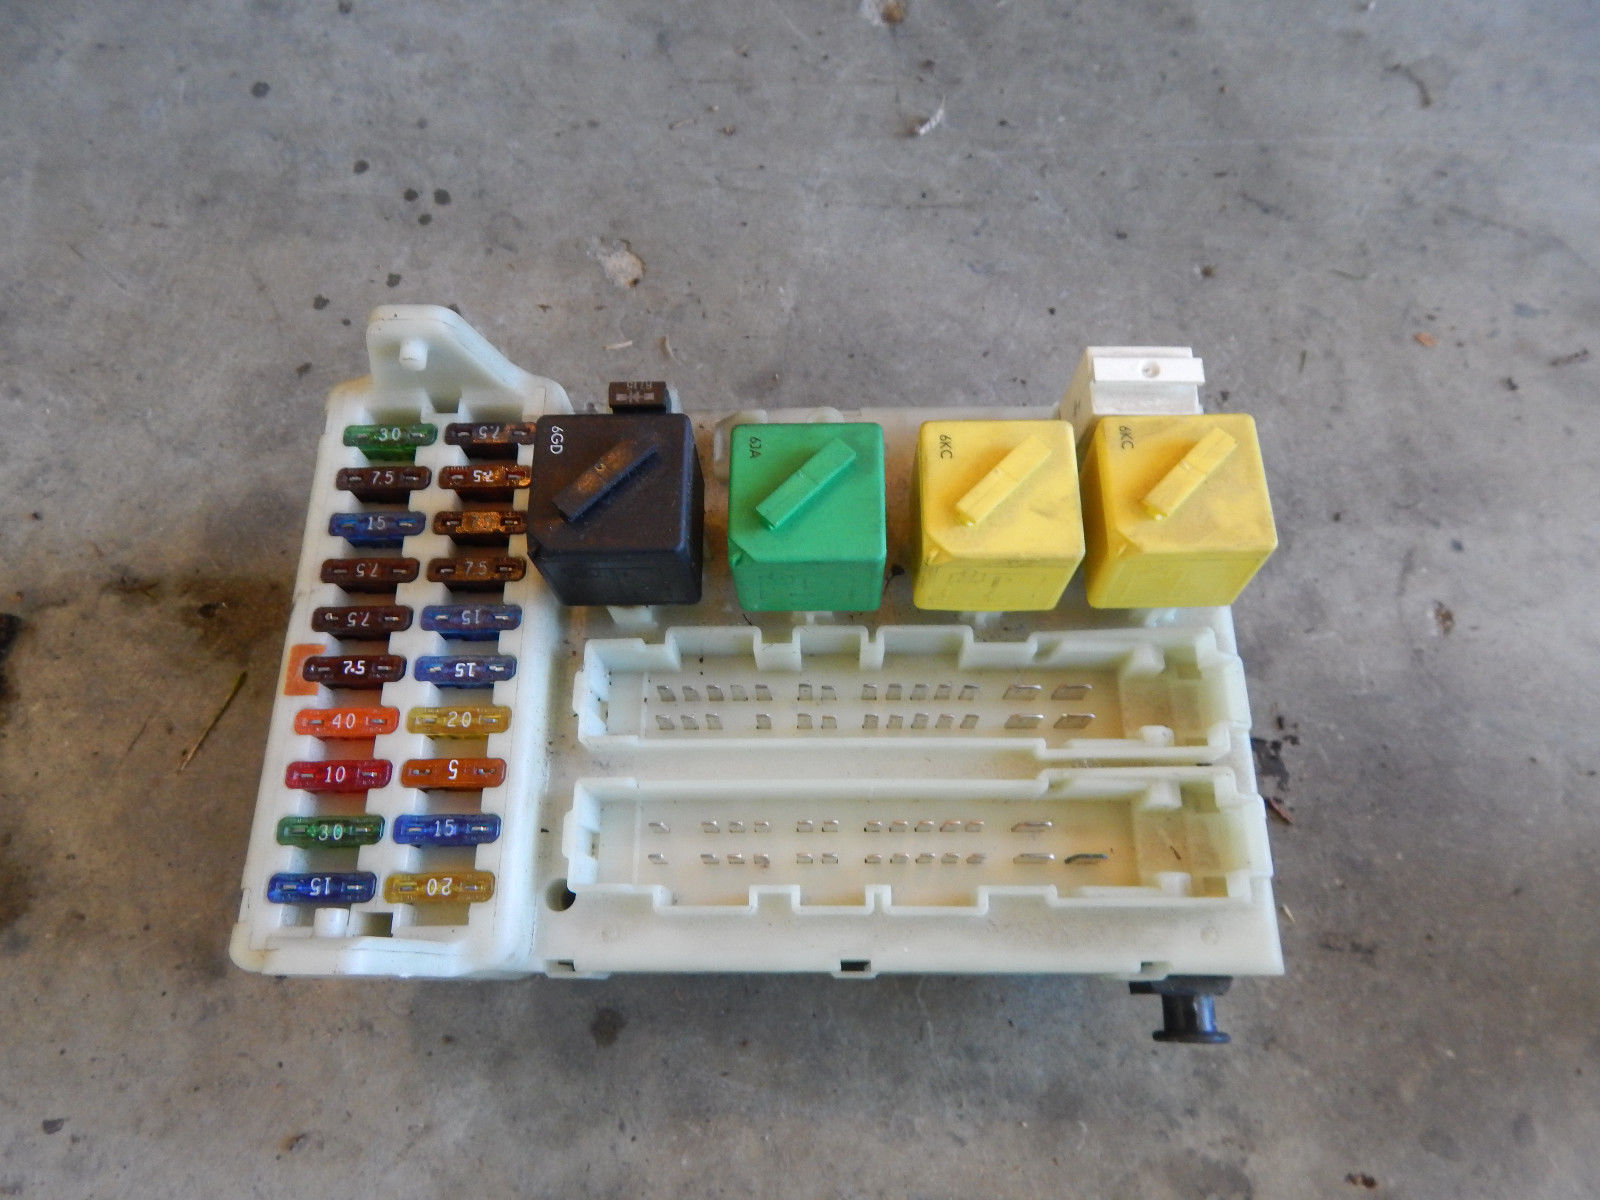 hight resolution of 1997 97 ford contour fuse box with central timer unit 94bg 14k150 ae 94bg